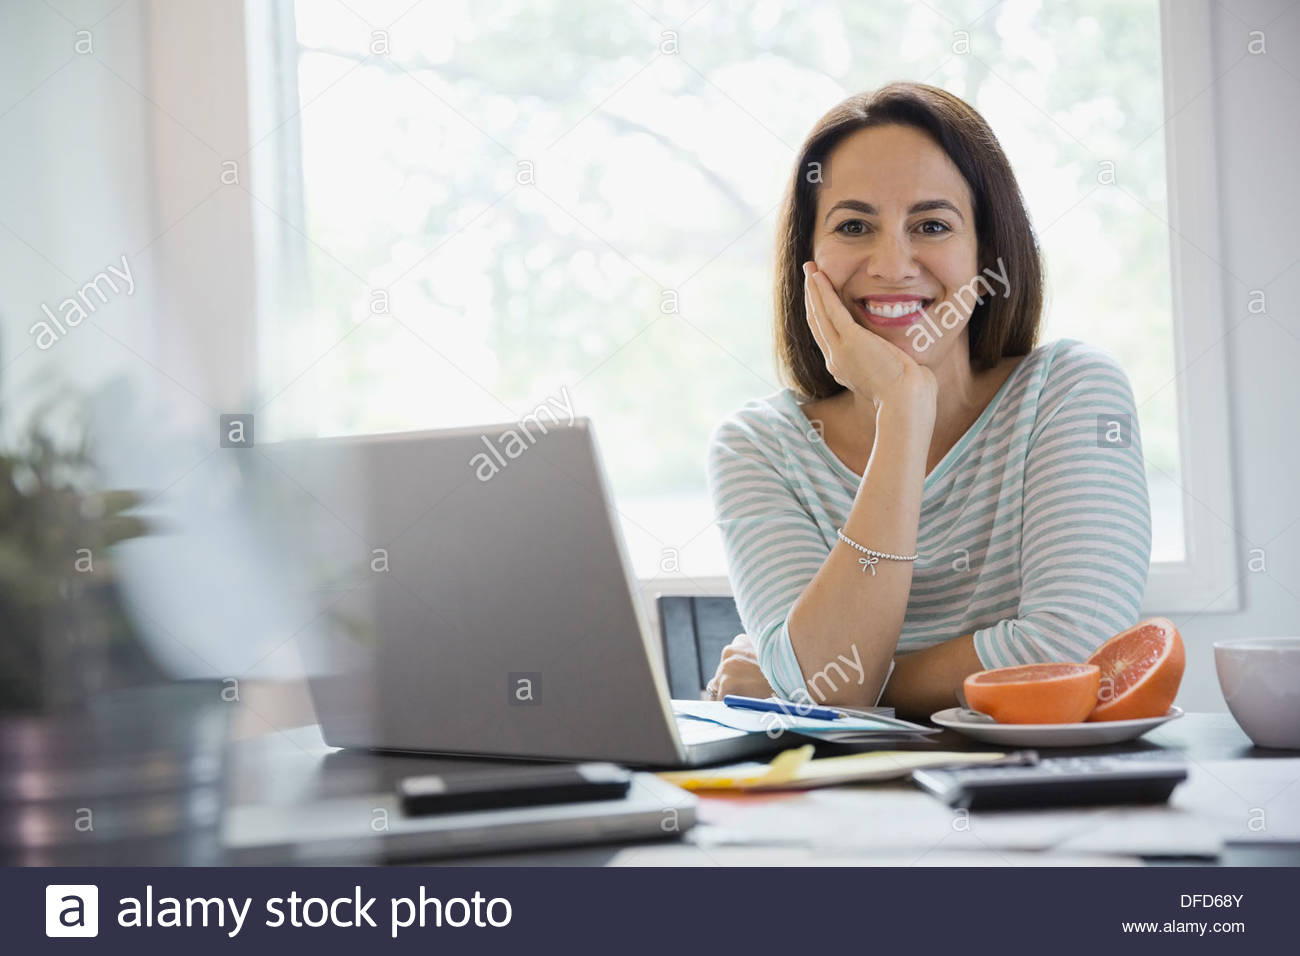 Portrait of happy woman sitting with laptop at desk in home office - Stock Image